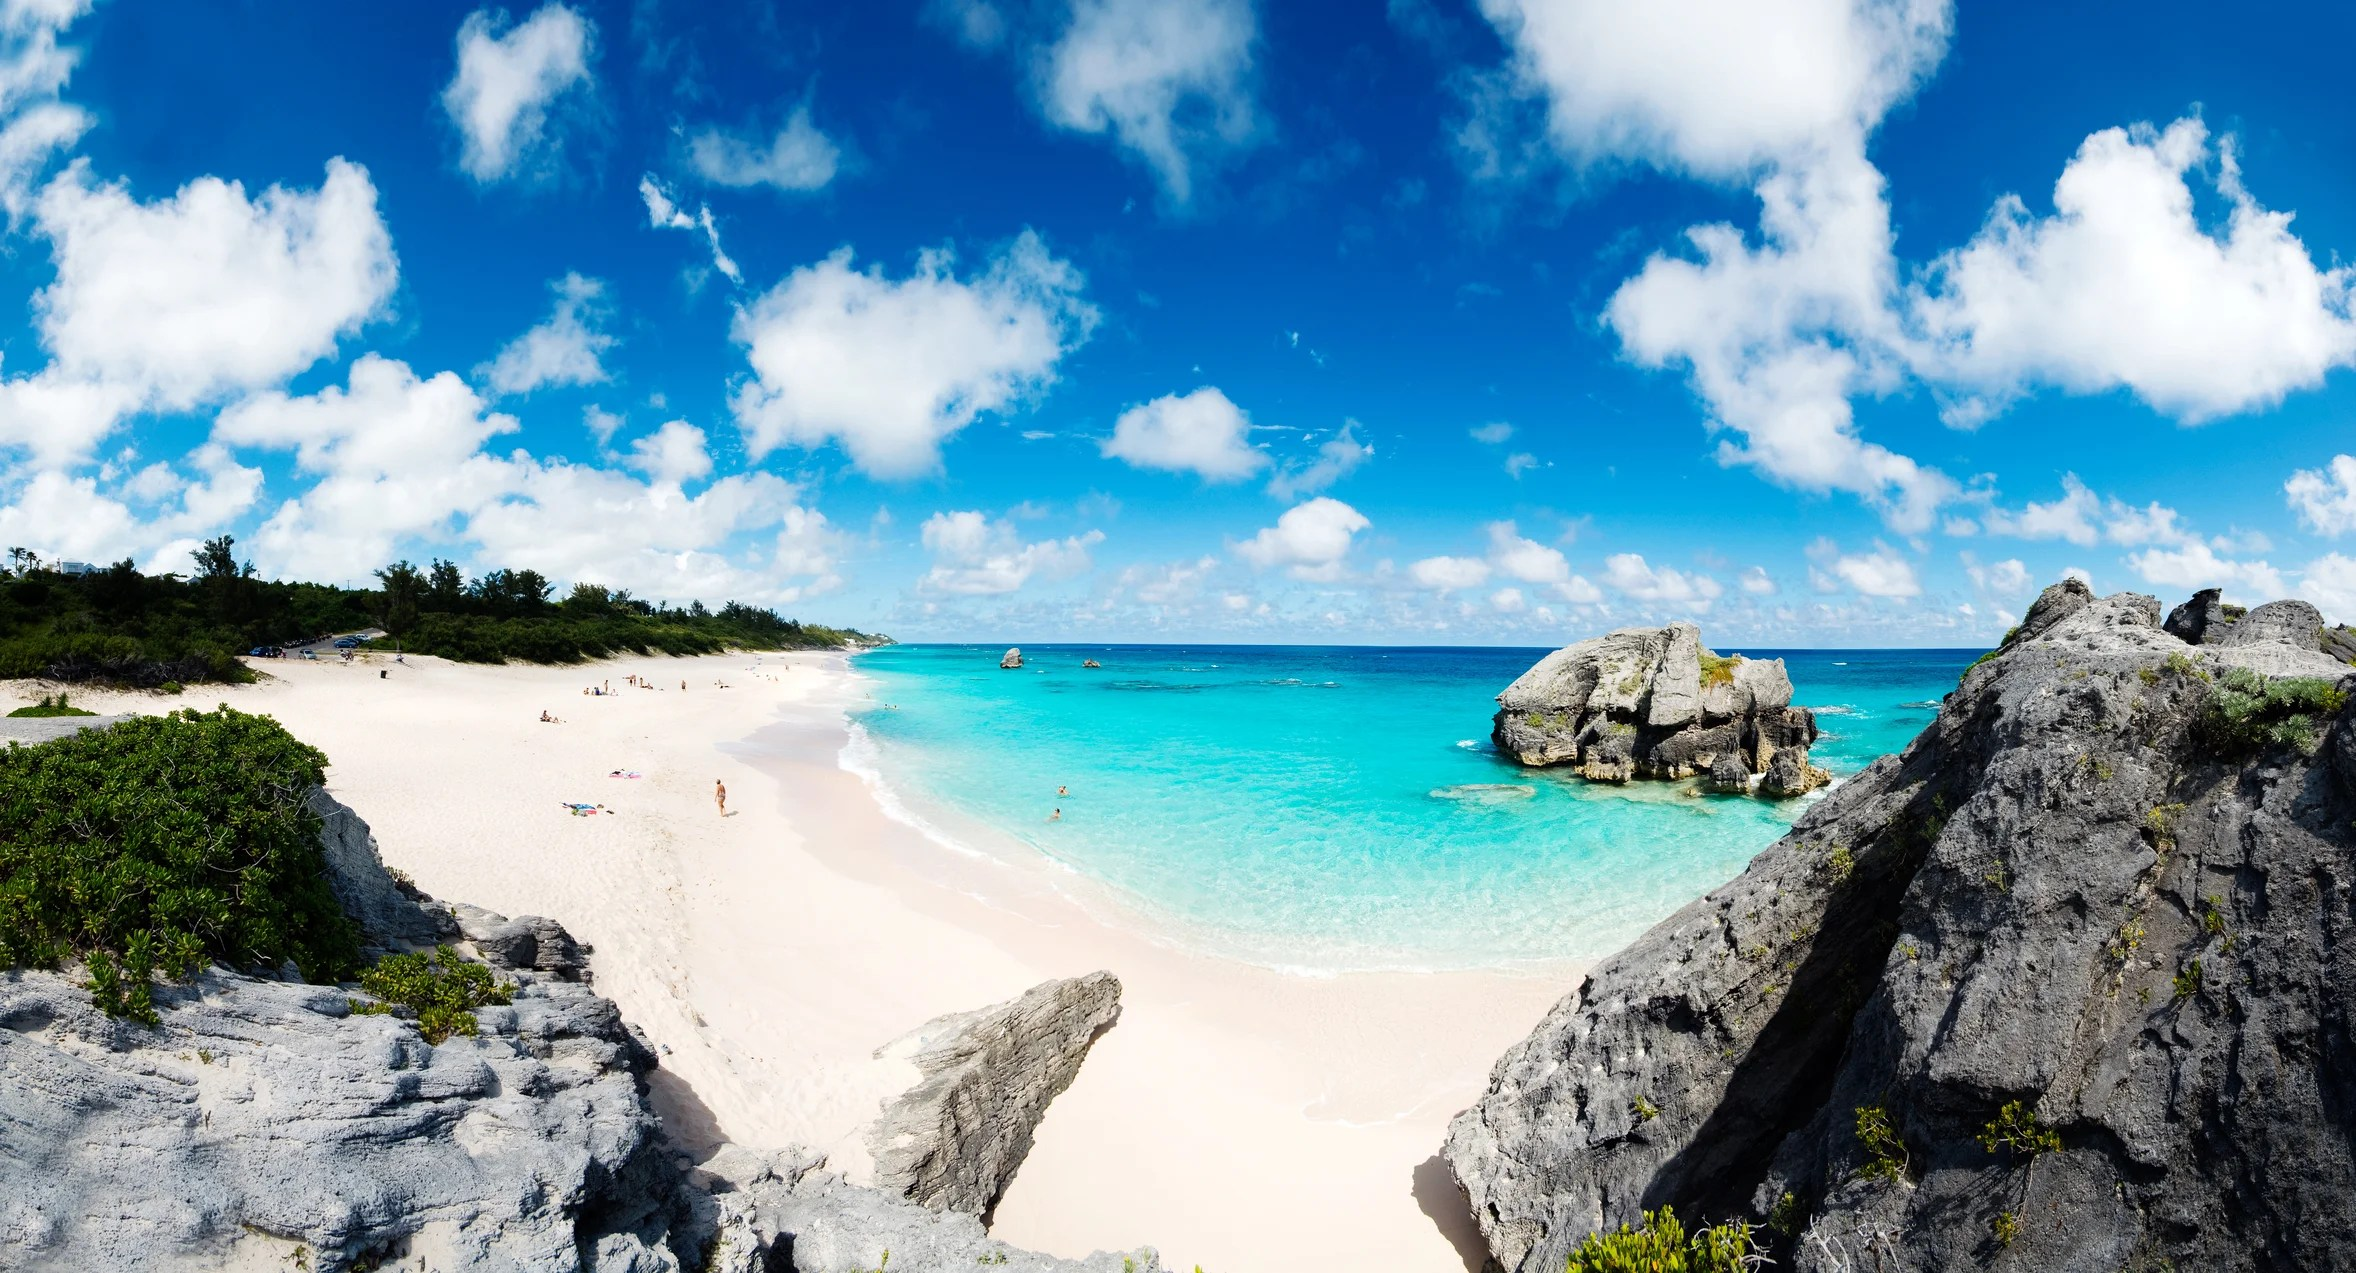 Deal Alert: Flights to Bermuda From $57 One-Way, or 12,000 Miles Round-Trip